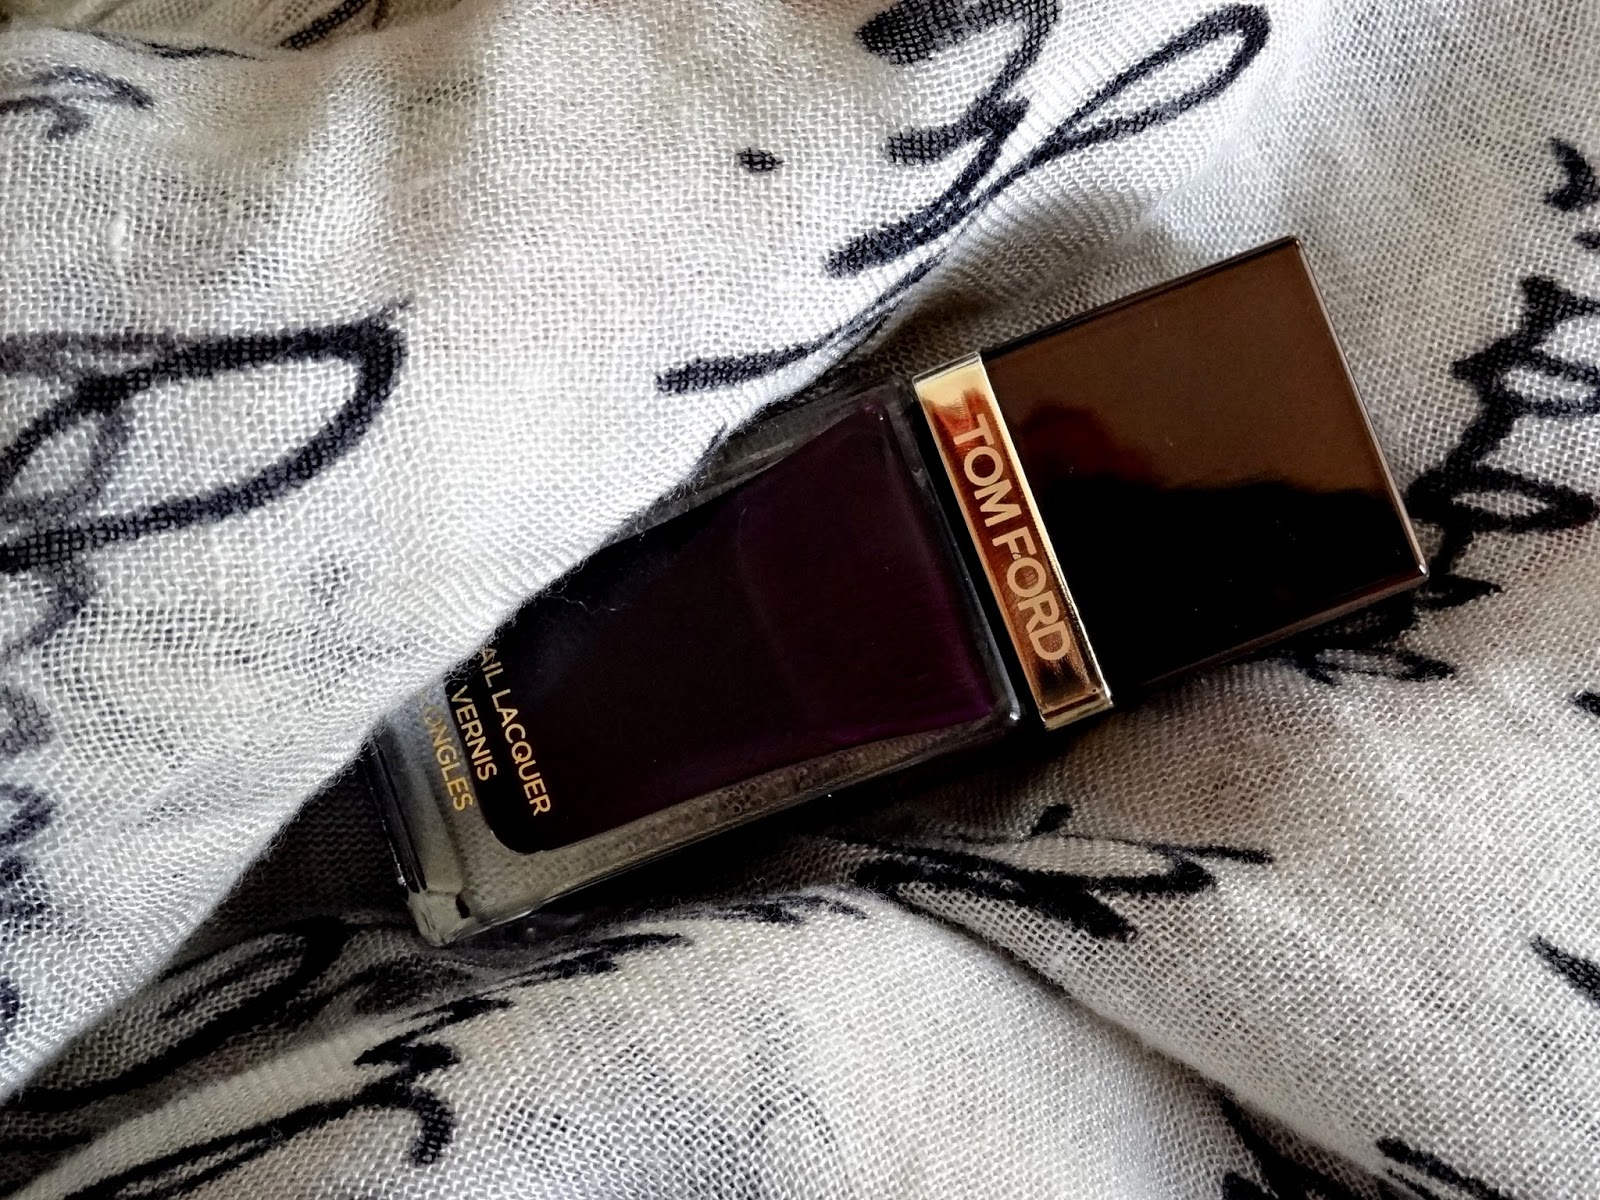 Tom Ford Nail Lacquer in Viper Review, Photos & Swatches